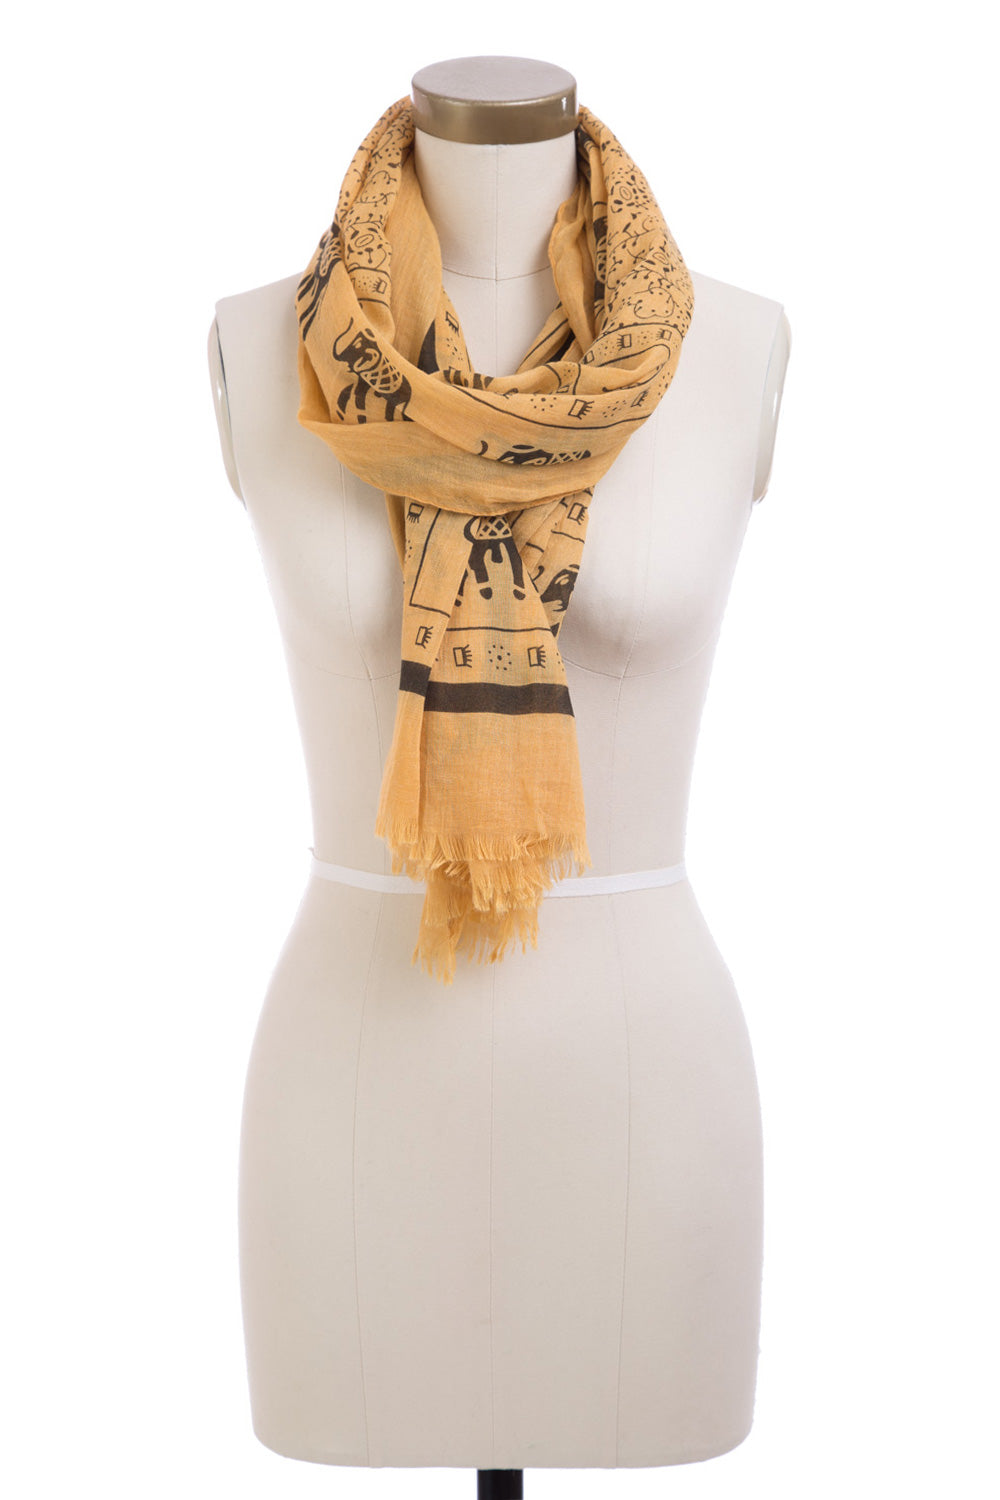 Type 3 Elephants on Parade Scarf